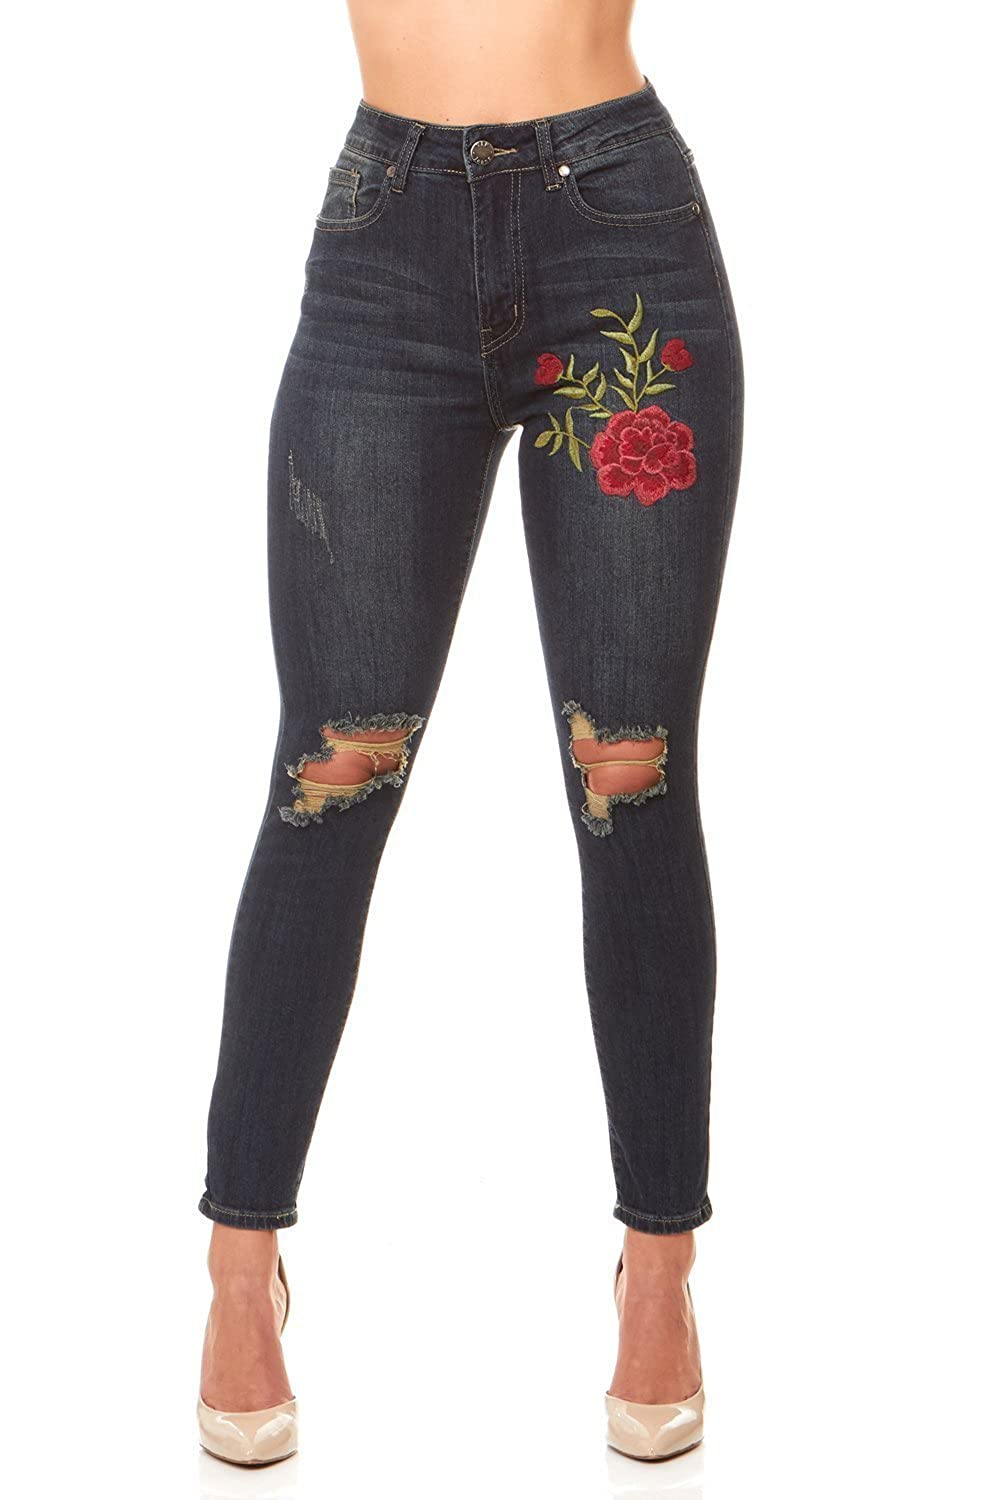 95484573b6b7d V.I.P. JEANS High Waist Ripped and Distressed Soft Stretch Skinny Jeans For  Women In Junior and Plus Sizes